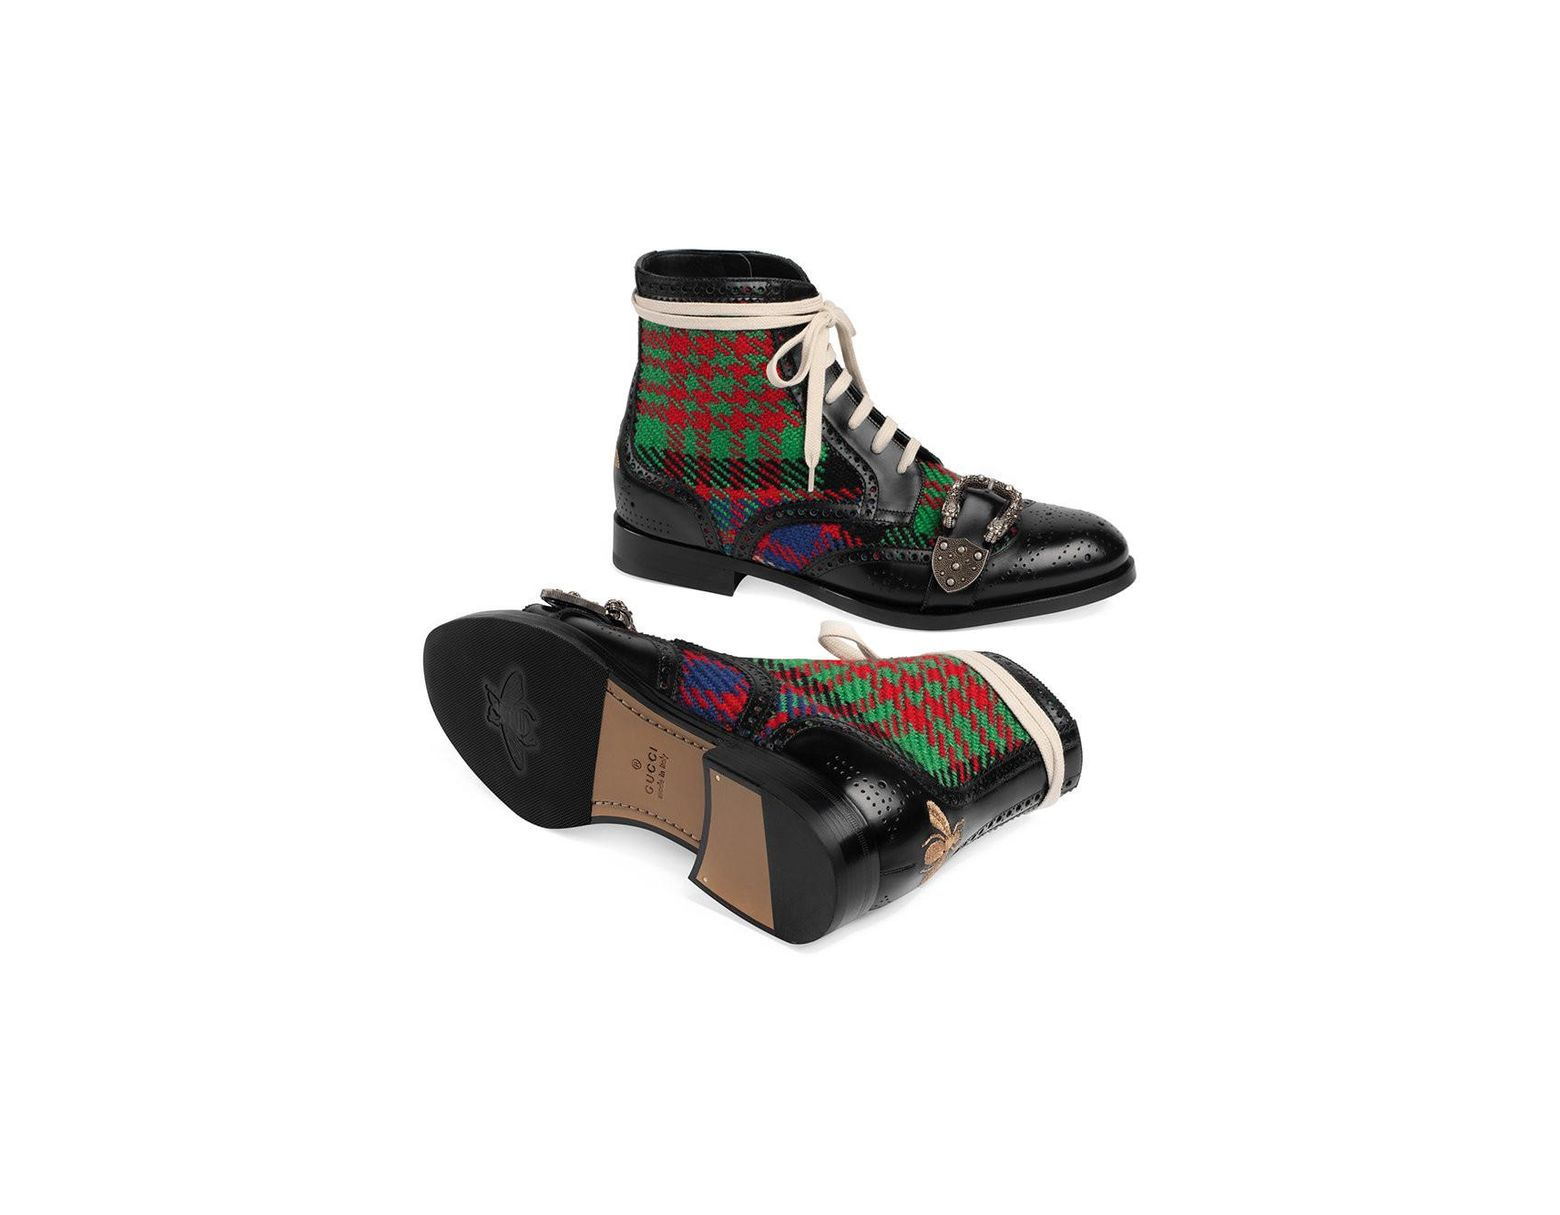 d0c1b224a80 Lyst - Gucci Tartan Queercore Brogue Boot in Black for Men - Save 22%